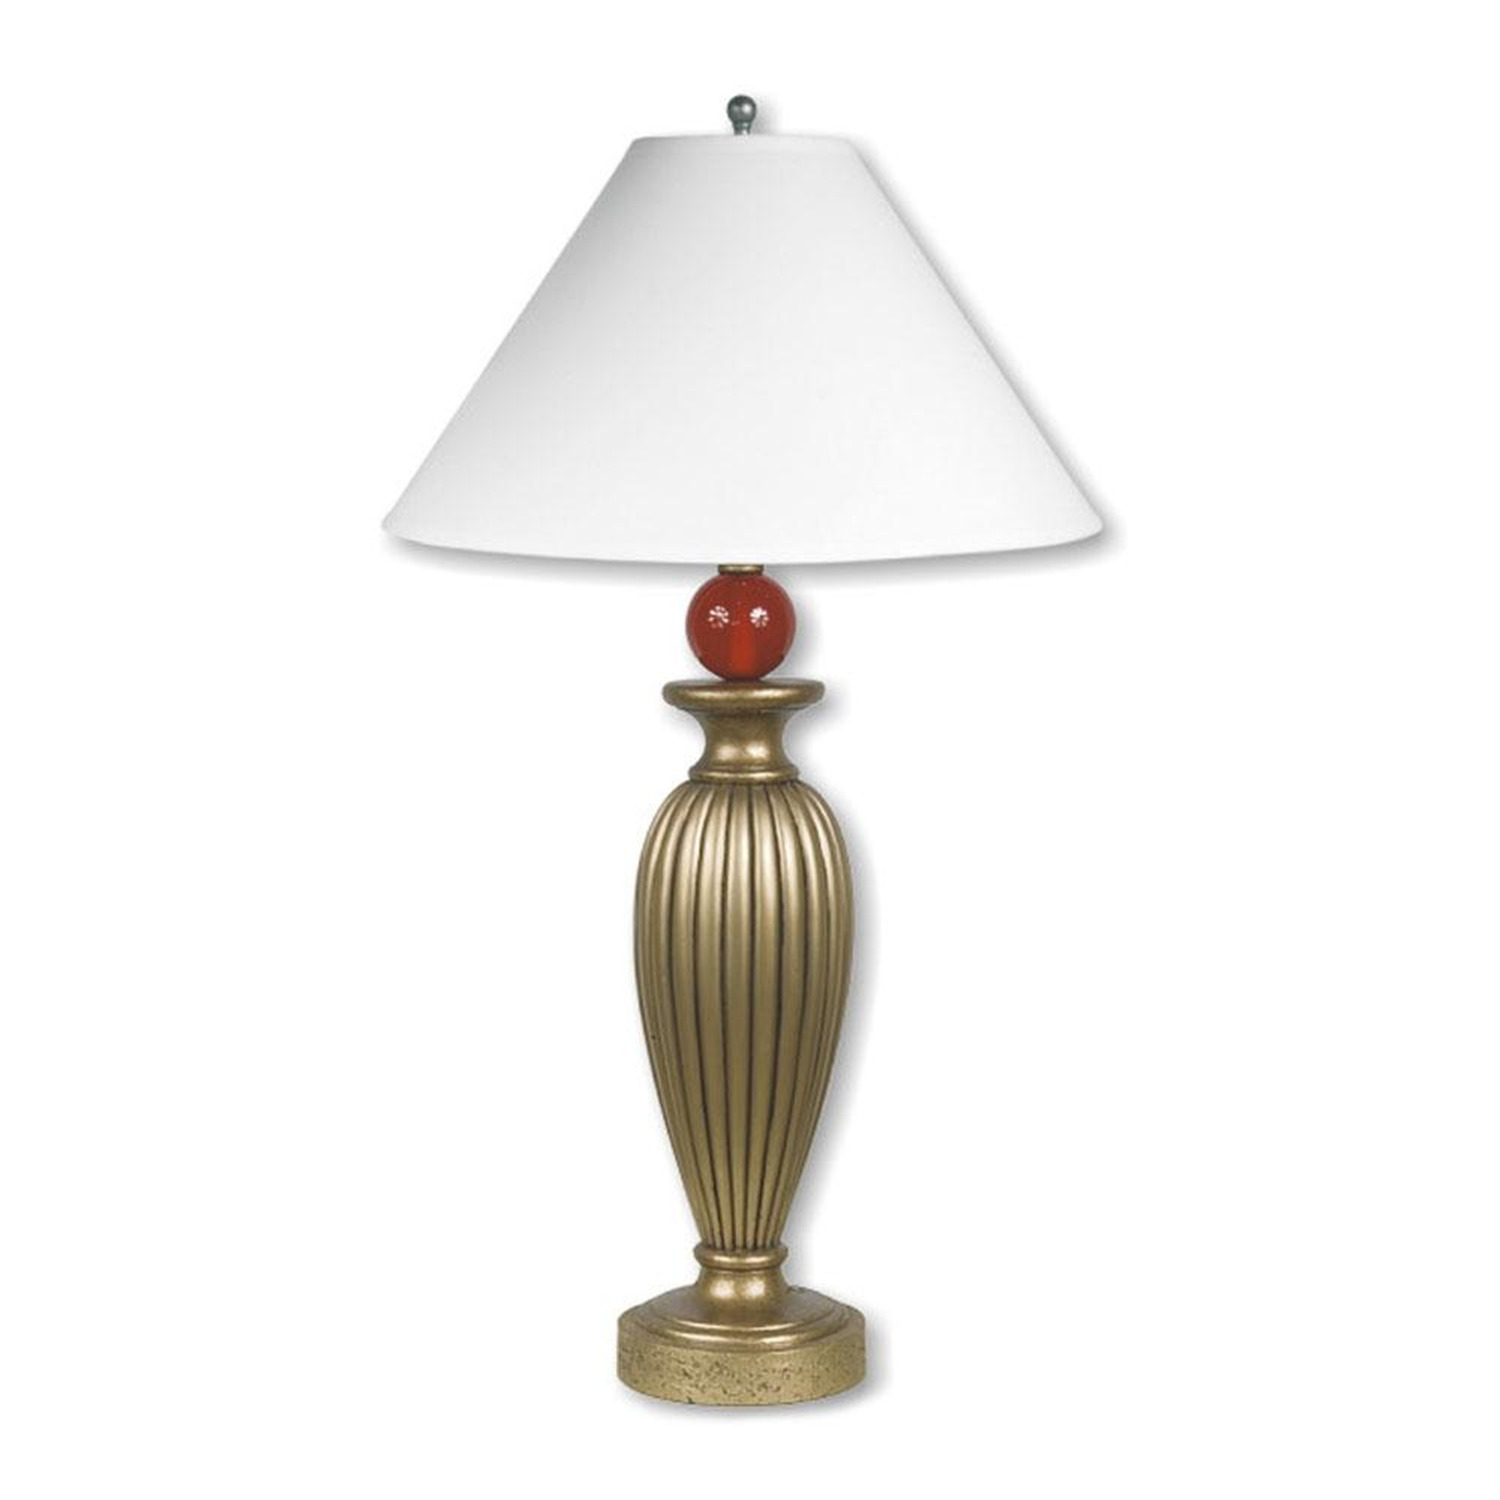 ORE International Antique Table Lamp By OJ Commerce 8189A